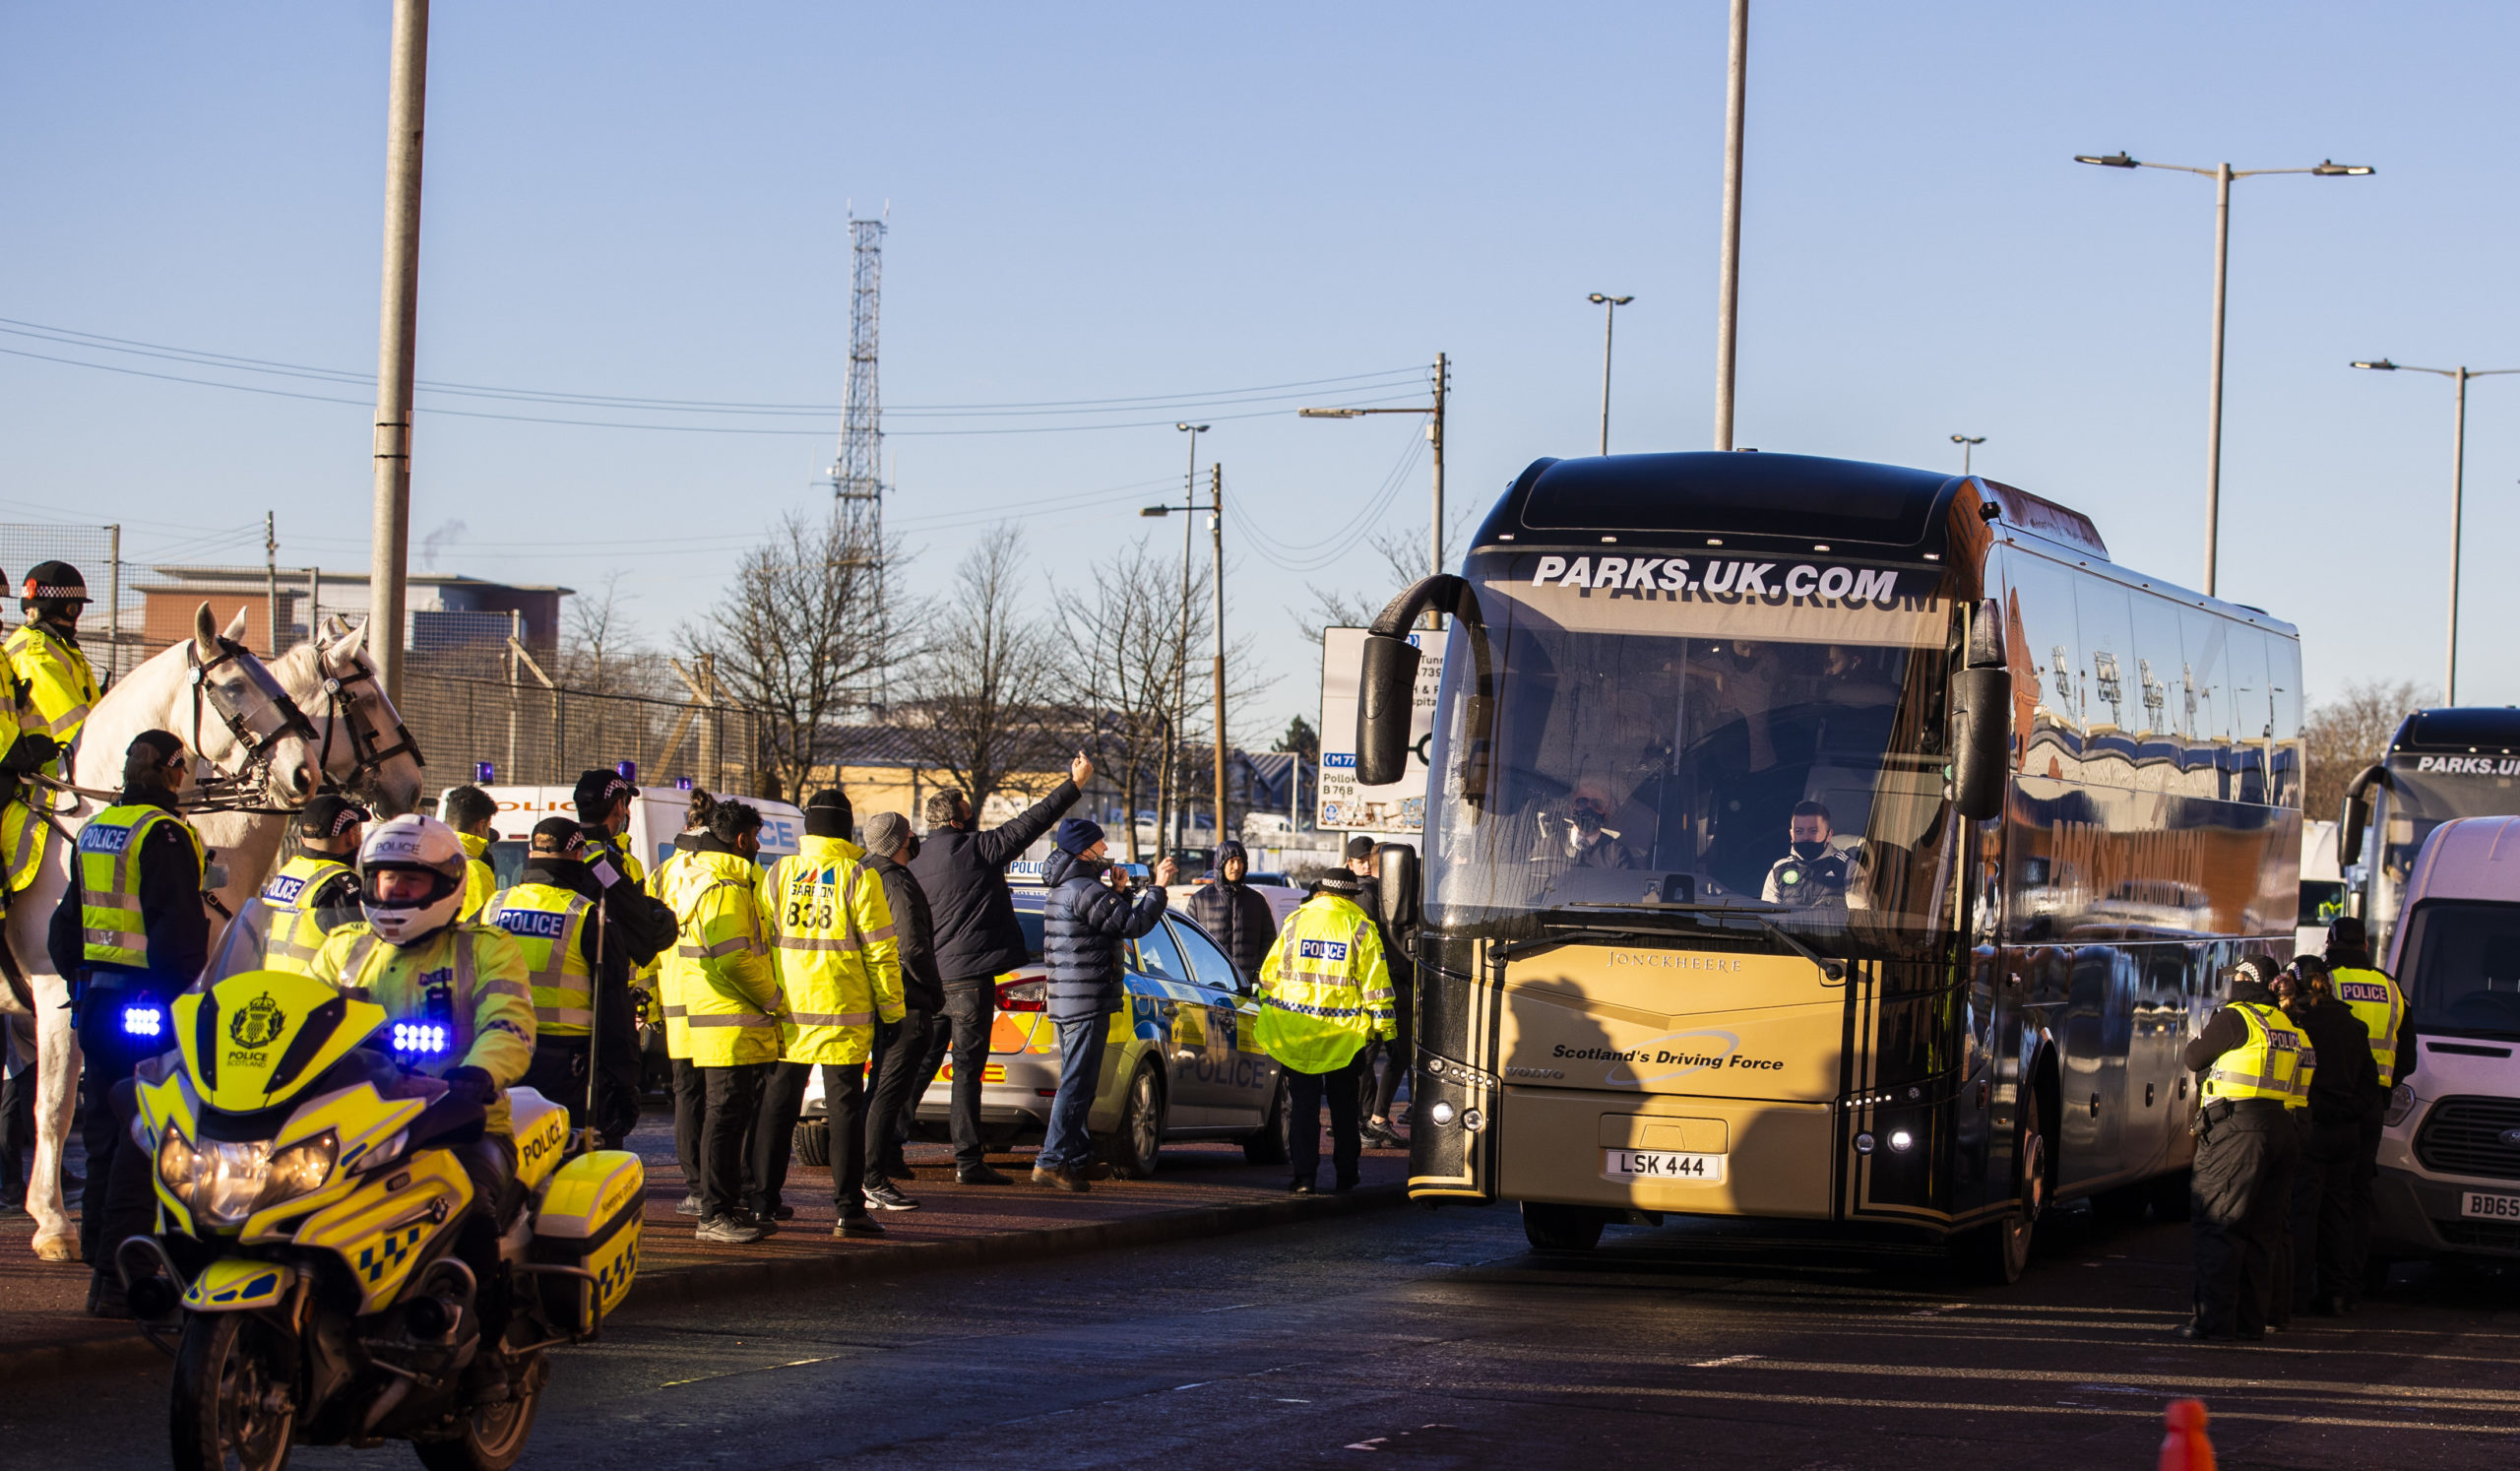 The Celtic bus arrives at Ibrox